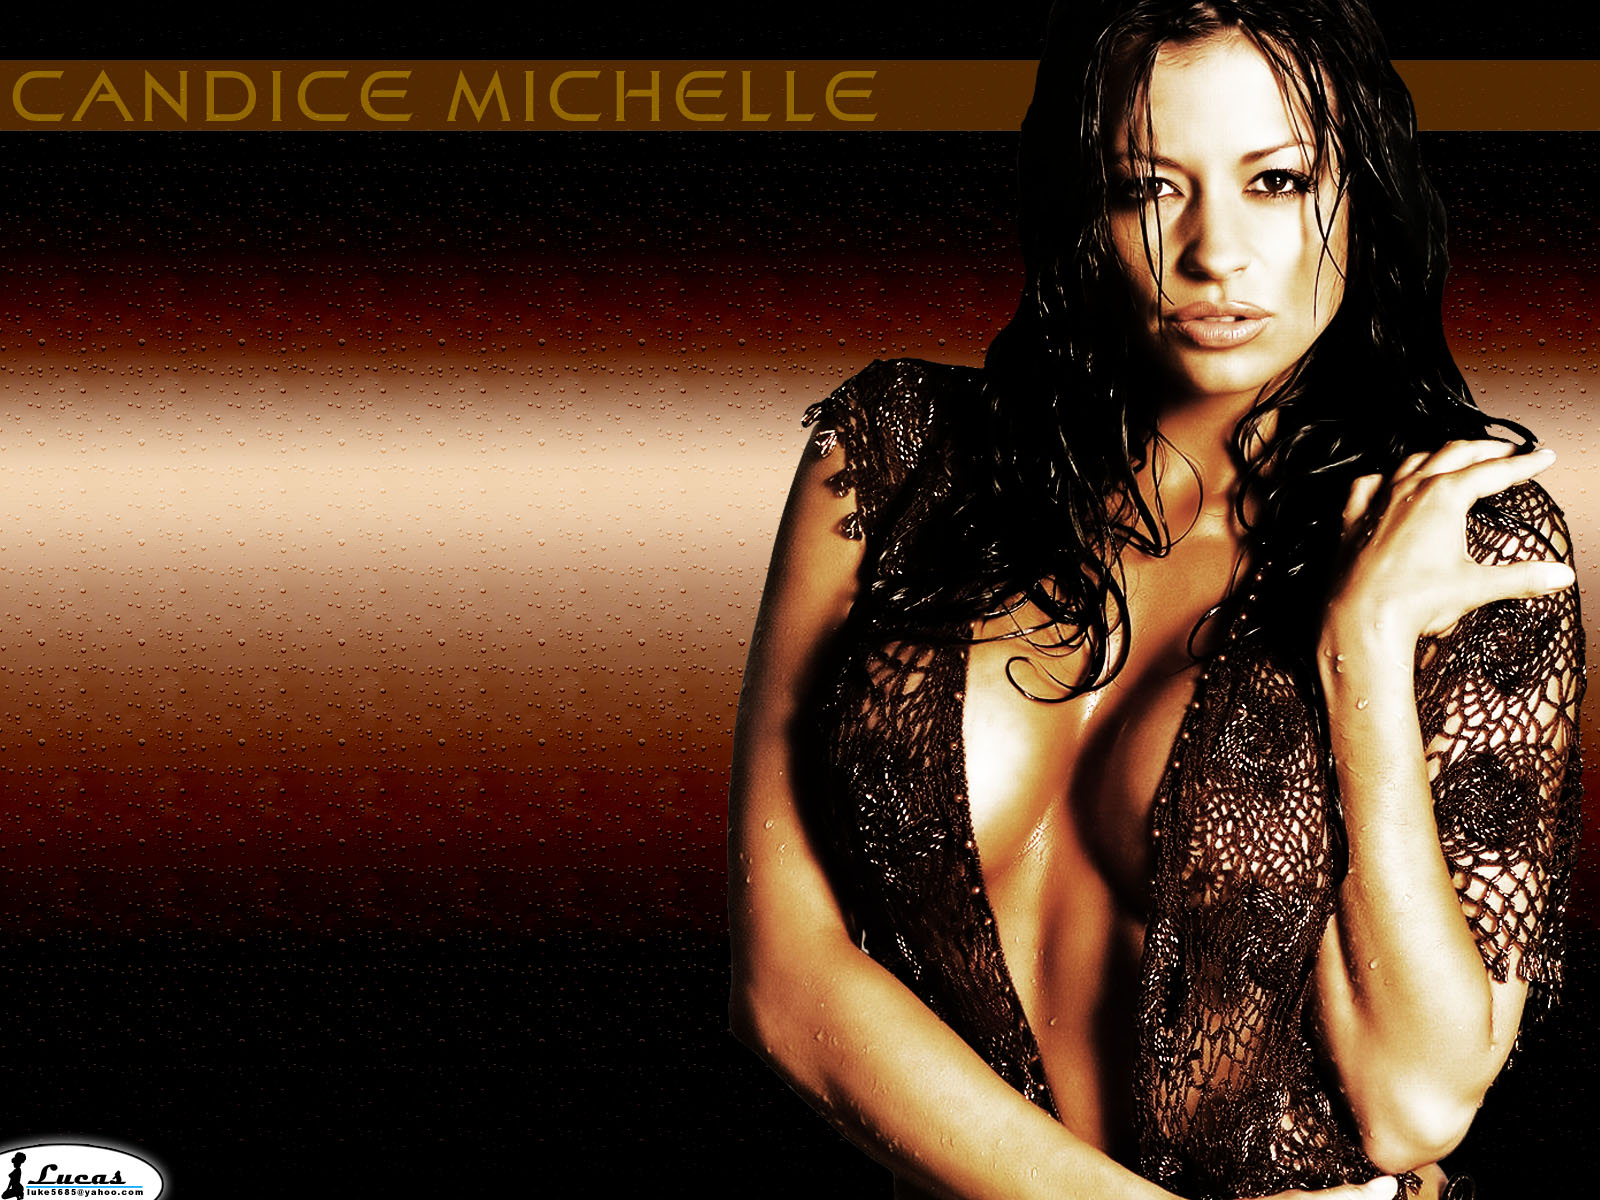 http://4.bp.blogspot.com/-XmSzY0b7_bs/T5qBJqRAY3I/AAAAAAAACoY/r8DEsSWOS3w/s1600/candice_michelle_2012+wallpapers+01.jpg